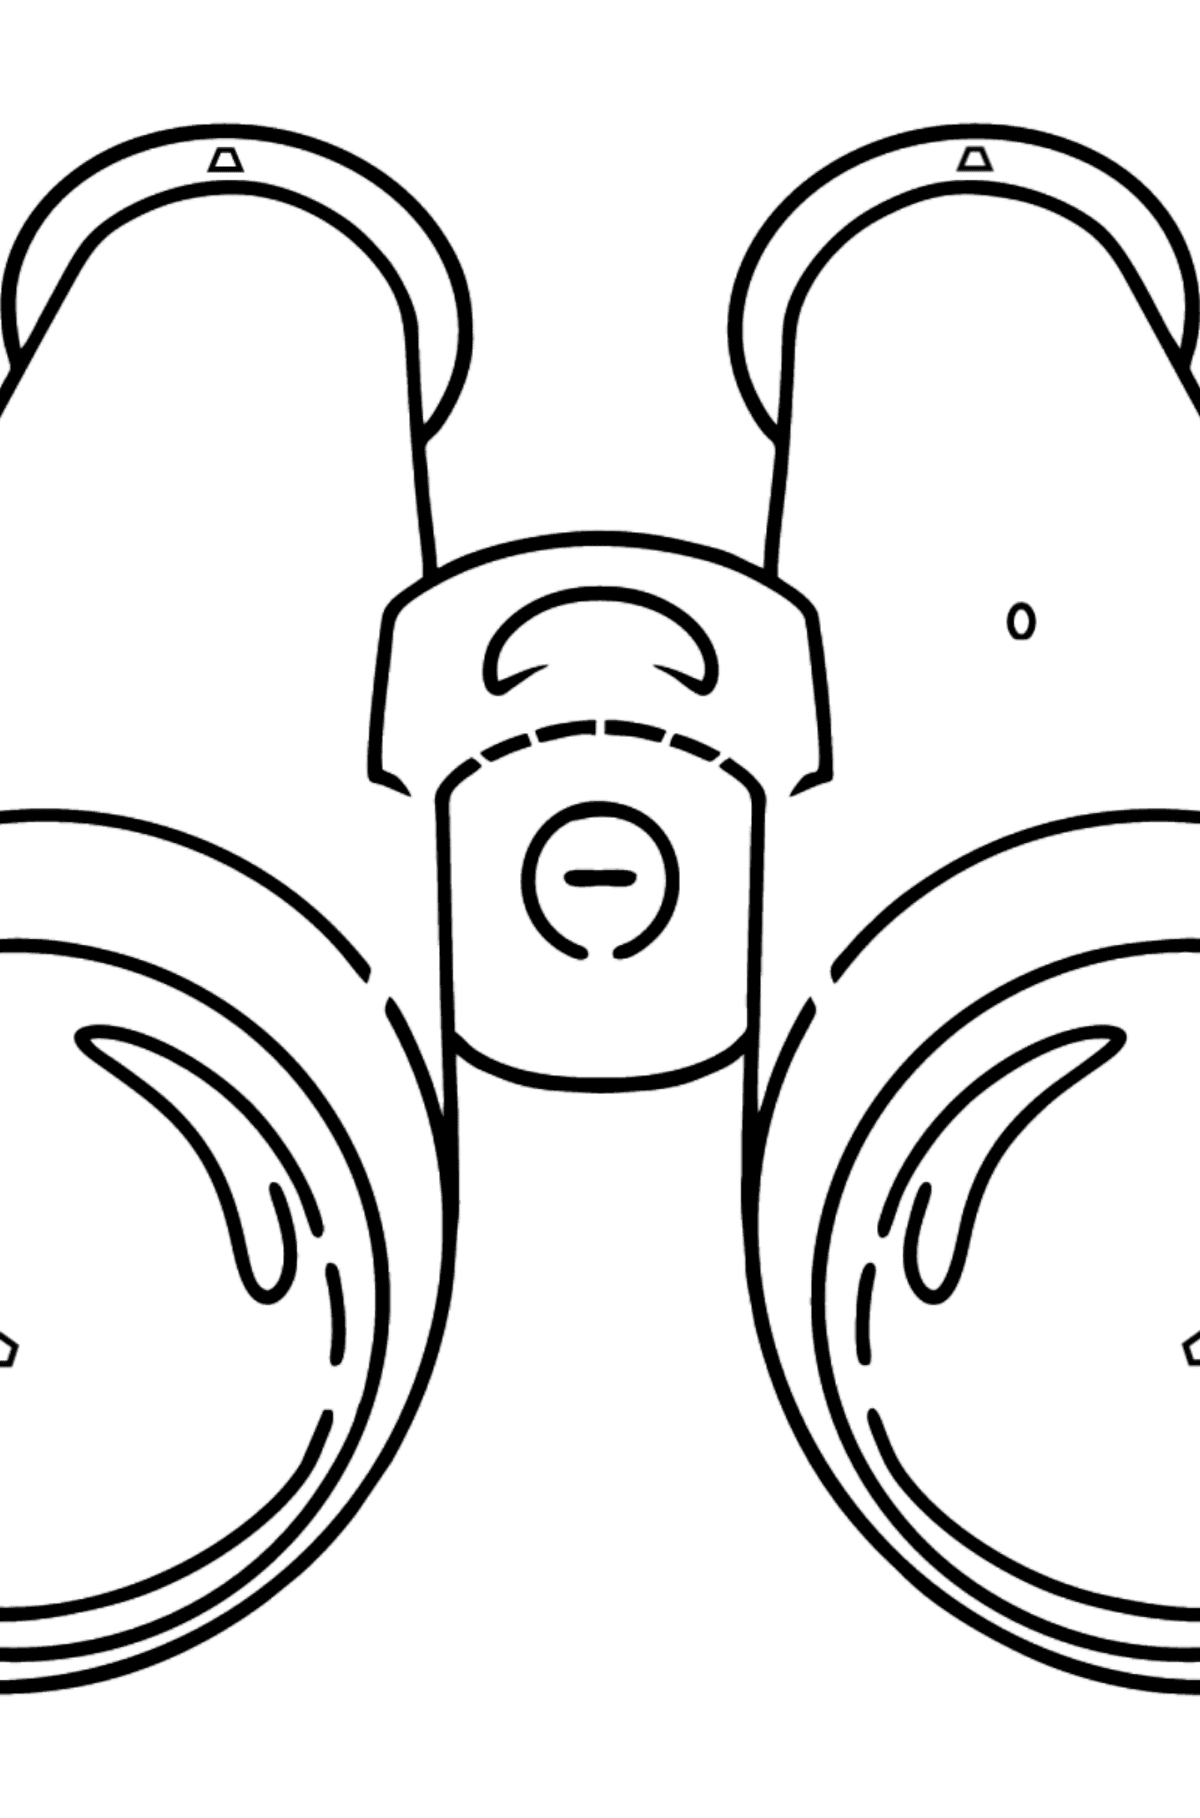 Binoculars coloring page - Coloring by Geometric Shapes for Kids